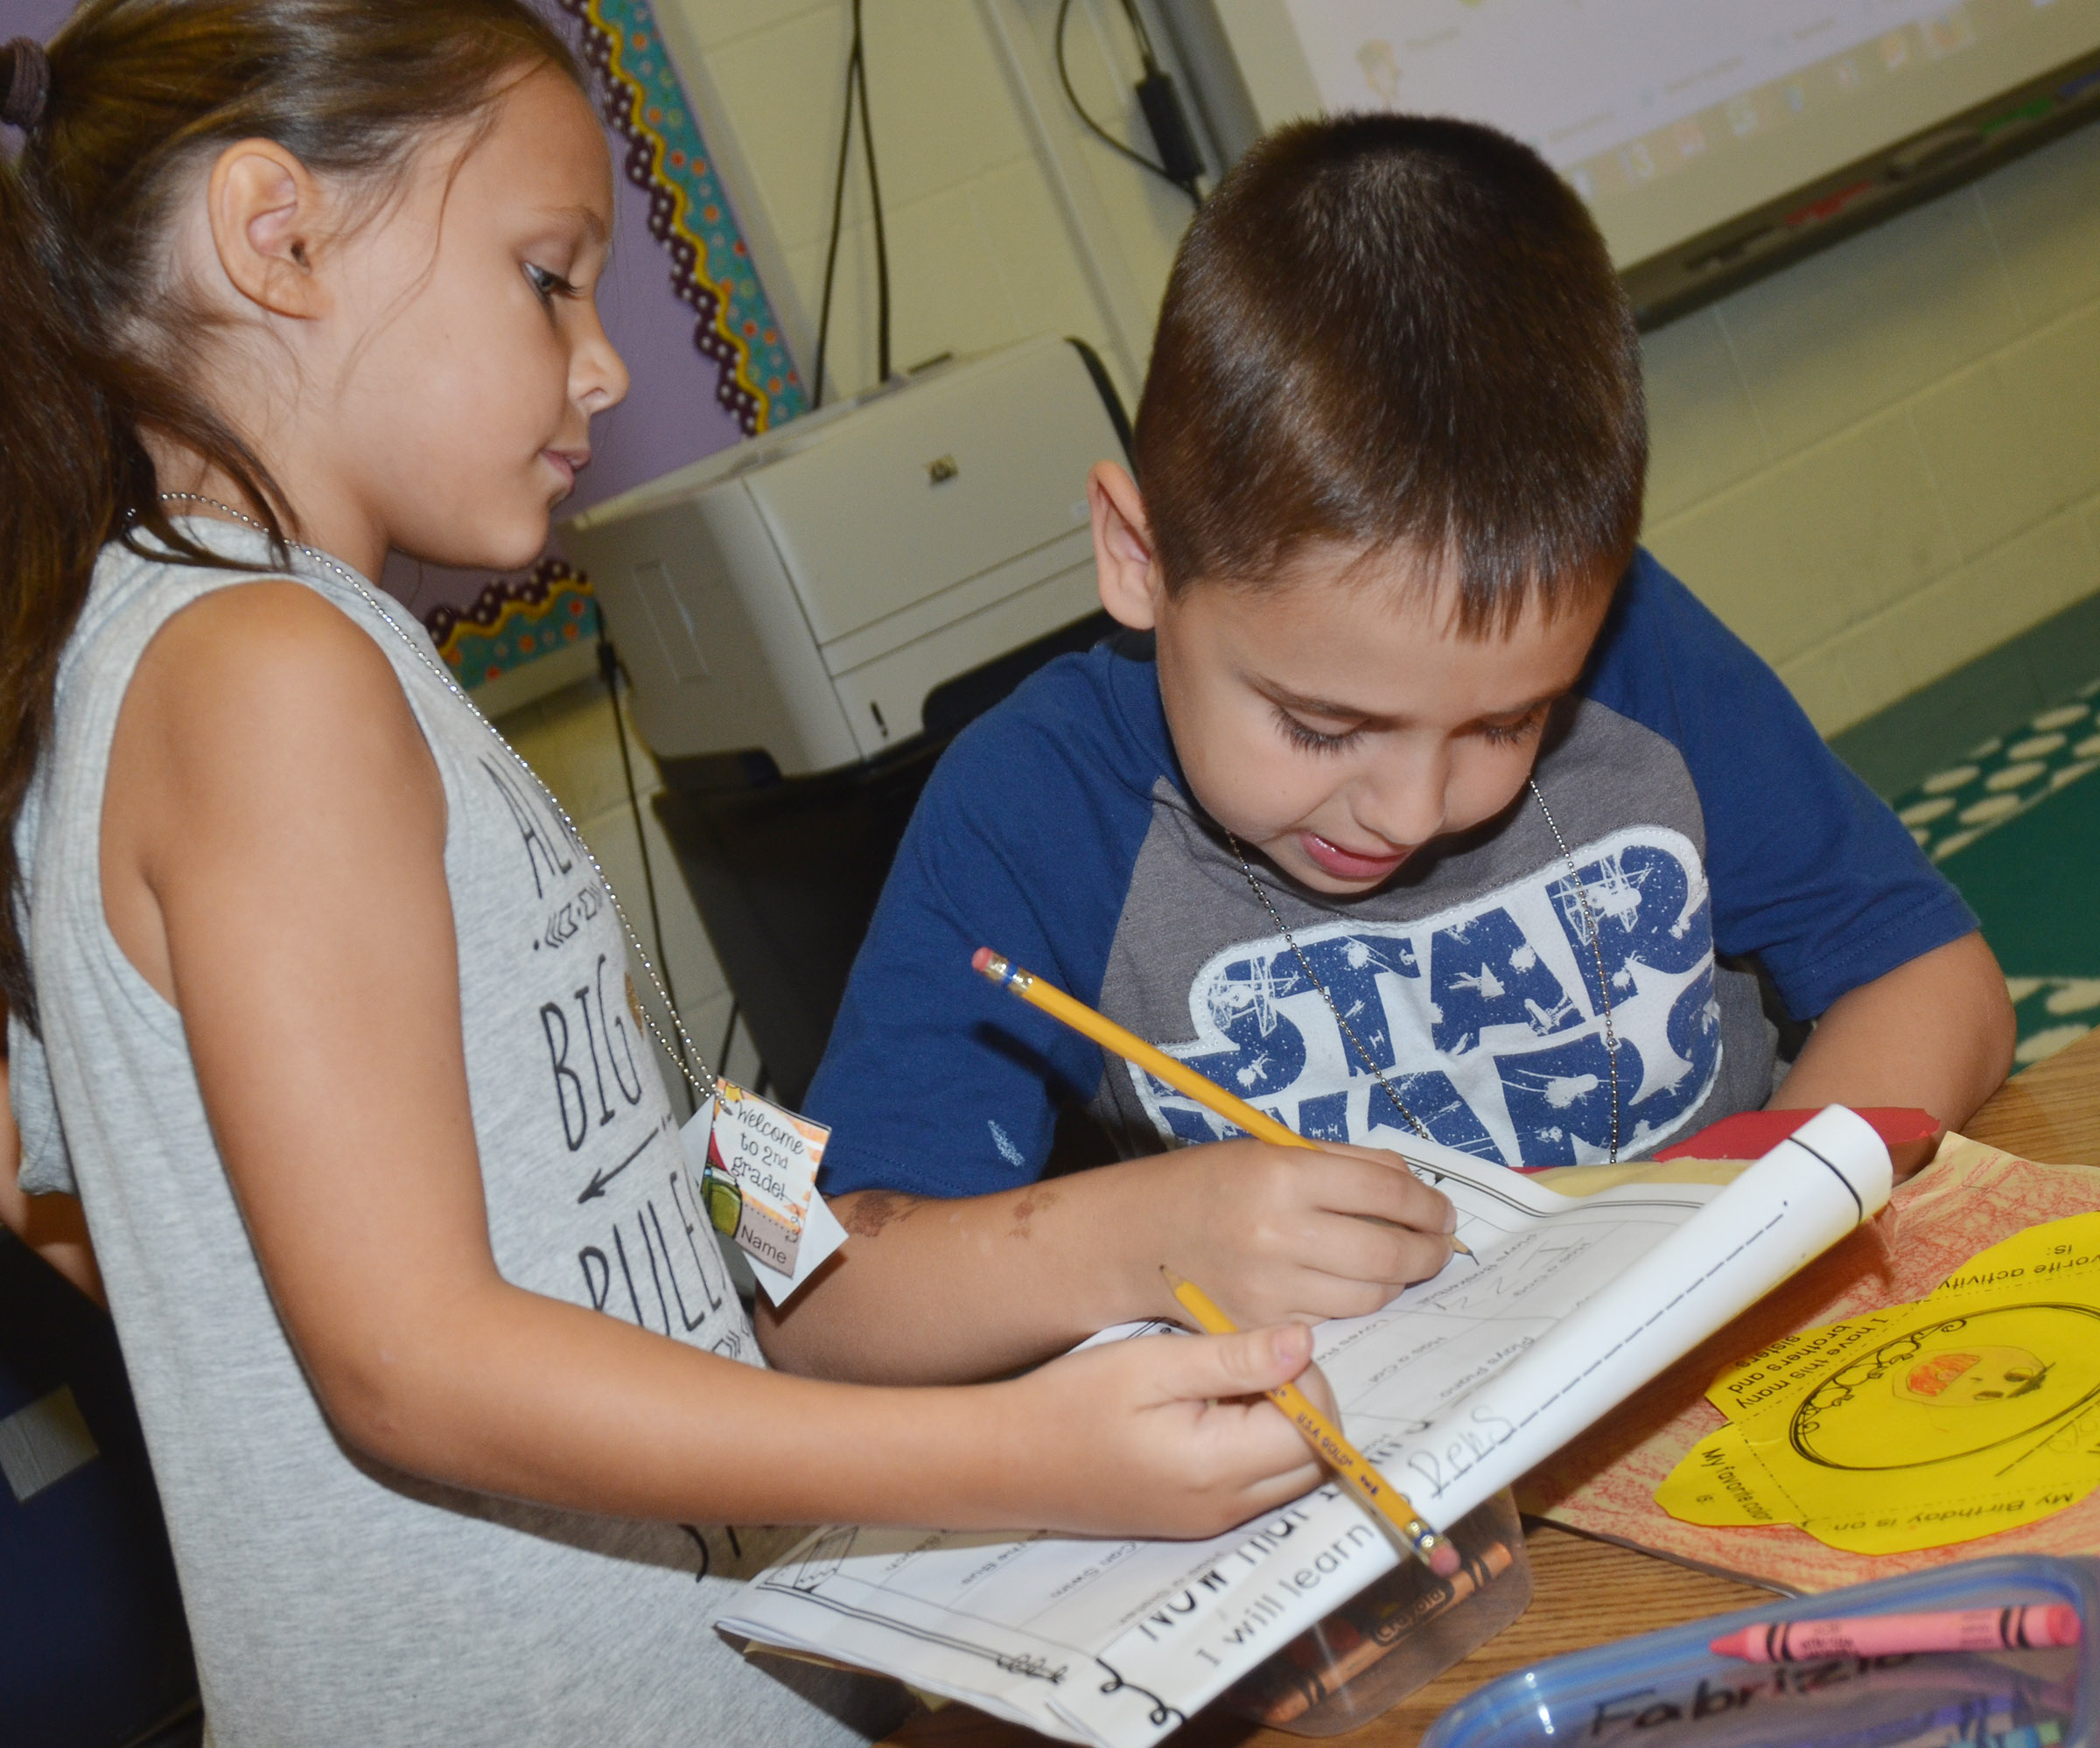 CES second-graders Serenity Taylor, at left, and Aaron Floyd sign each other's worksheets as they get to know each other.